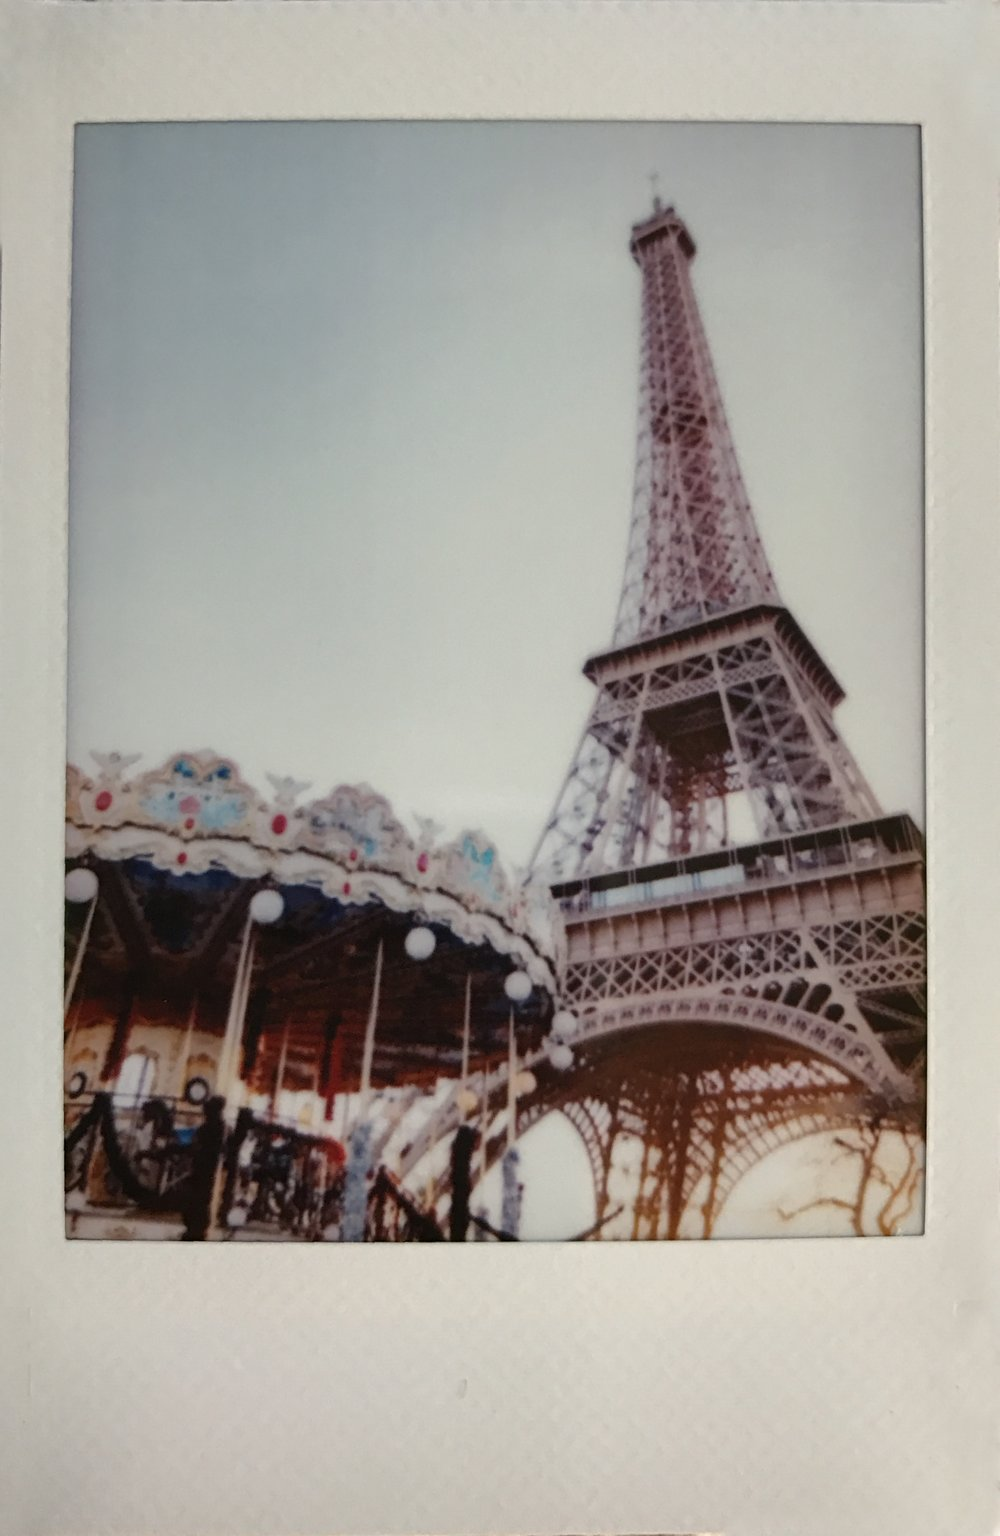 Eiffel Tower Carousel Polaroid by Ashley Goodwin.JPG